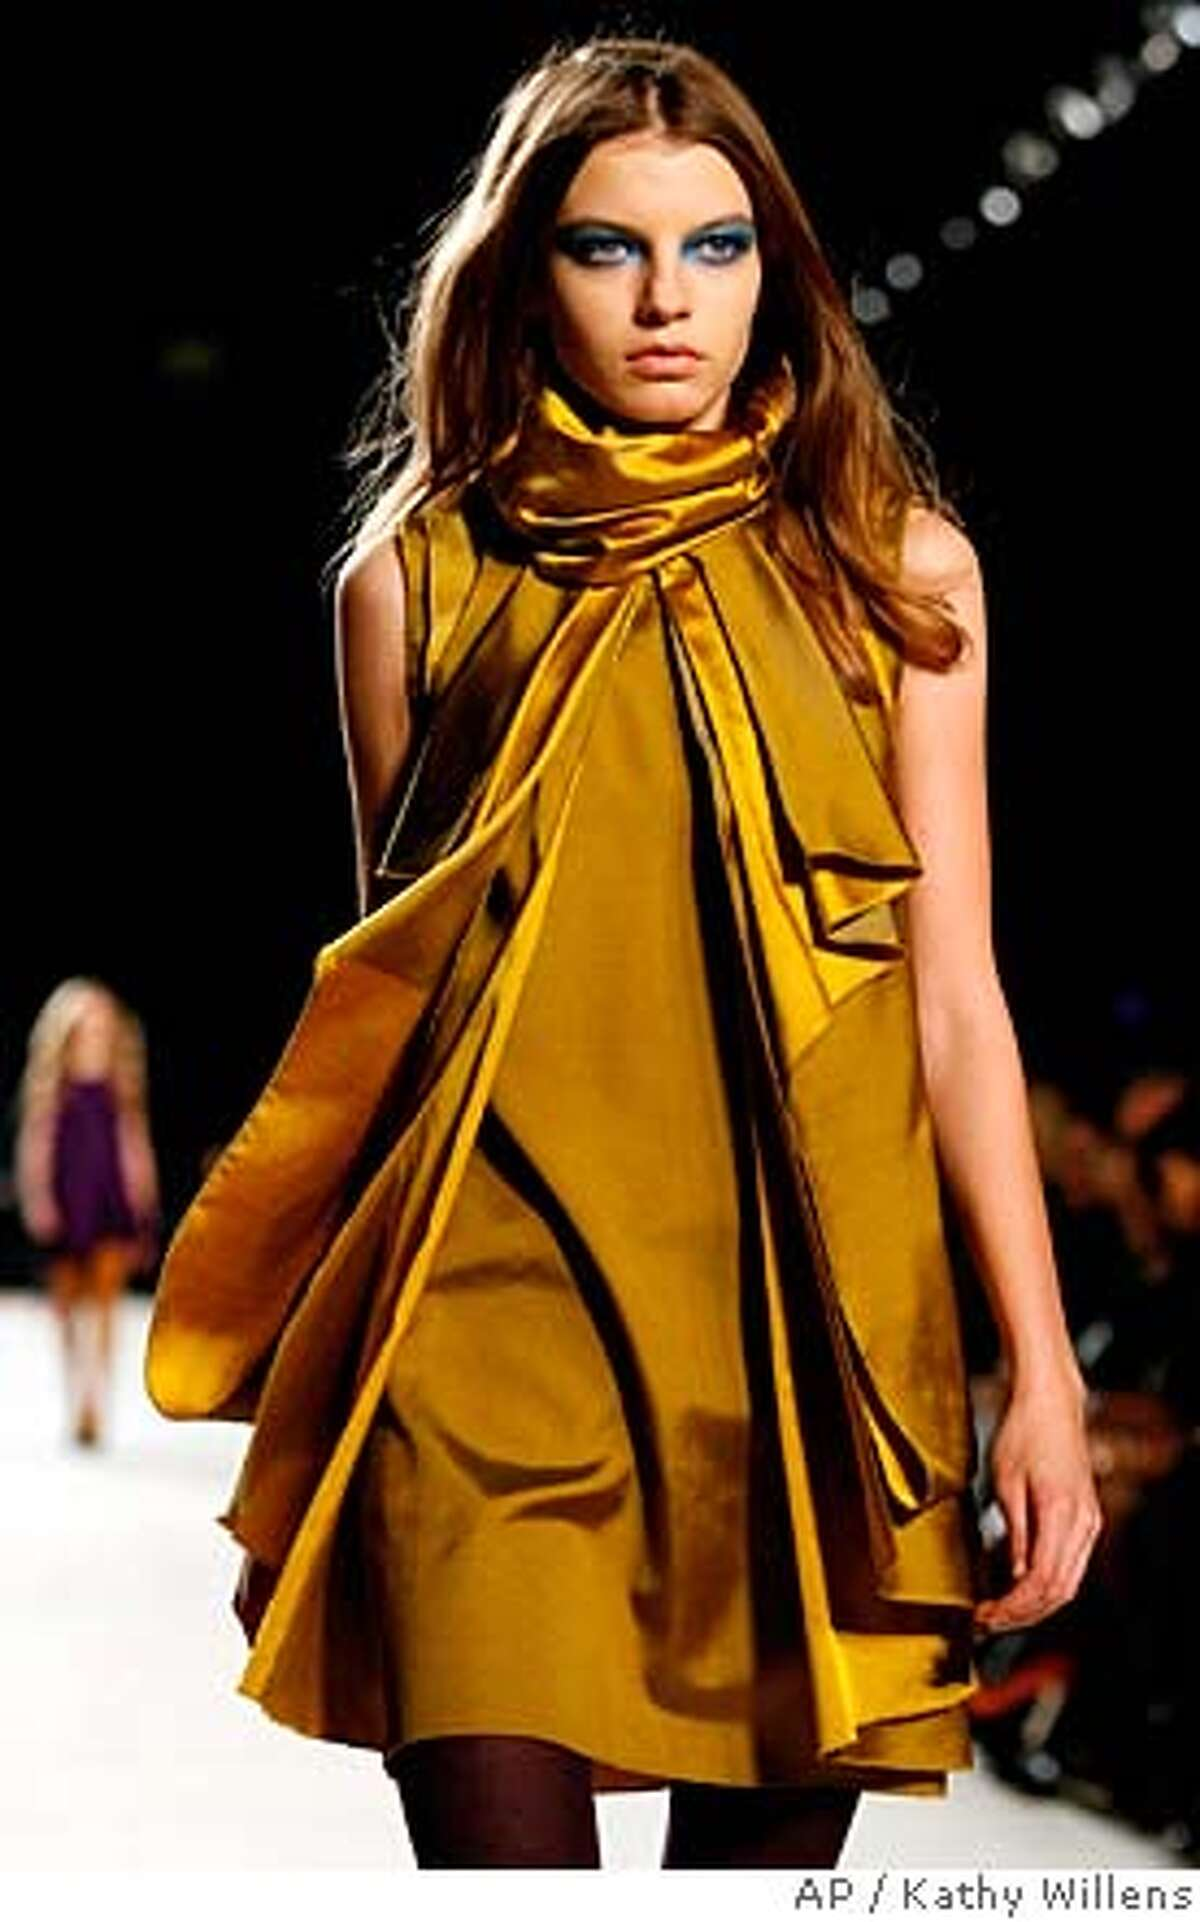 **FILE** A model walks the runway during the presentation of Proenza Schouler's Fall 2008 collection in New York in this Monday, Feb. 4, 2008 file photo. Mustard yellow, as seen here, is among the muted colors common at Fall Fashion Week. (AP Photo/Kathy Willens, FILE) A FEB. 4, 2008 FILE PHOTO